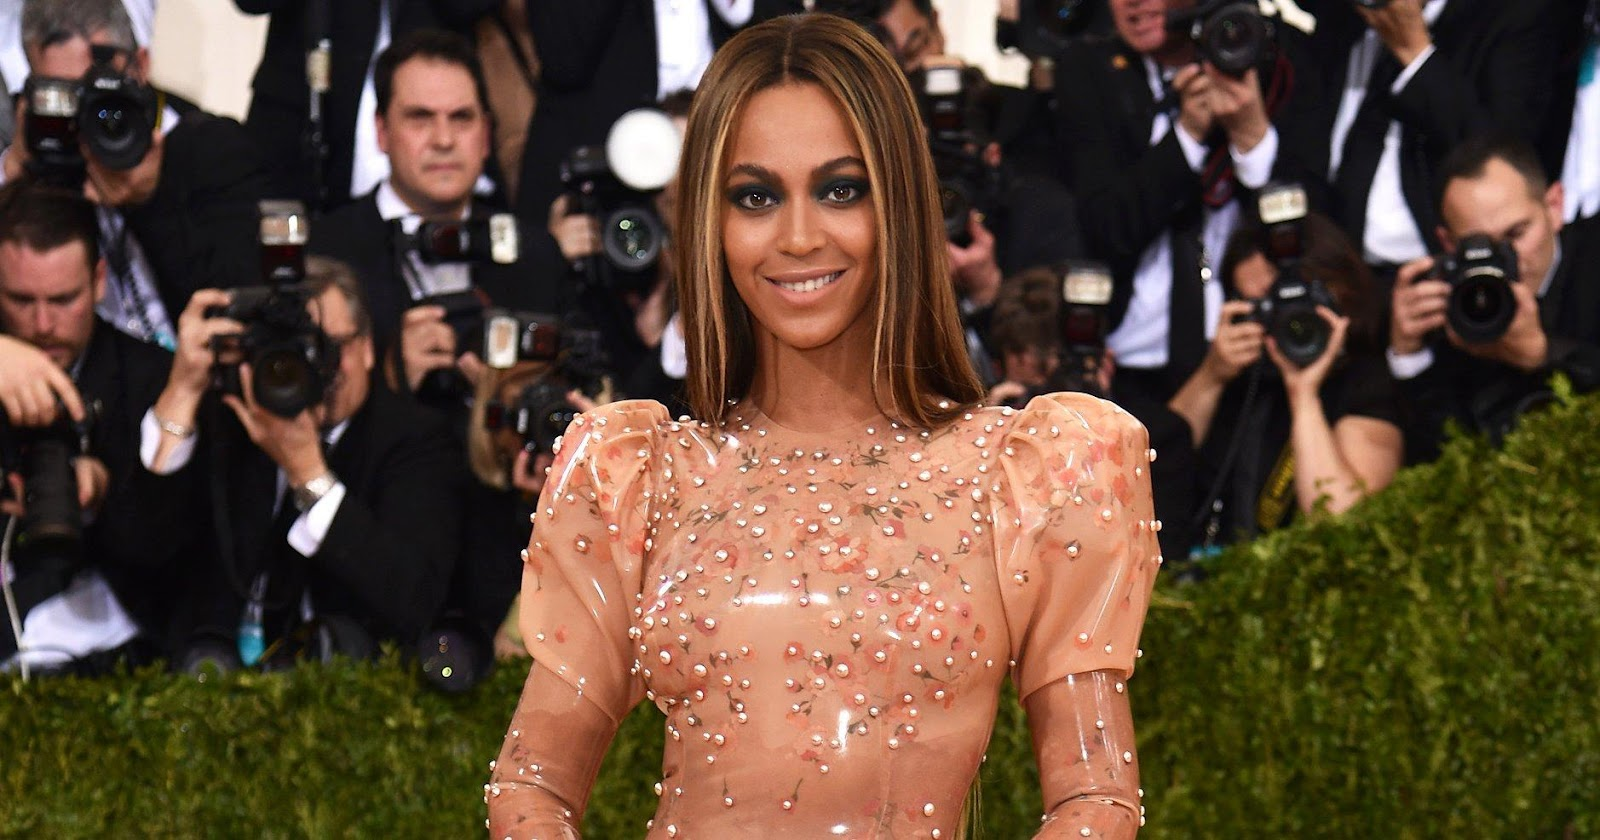 The Most Expensive Red Carpet Dresses of All Time and Who Wore Them